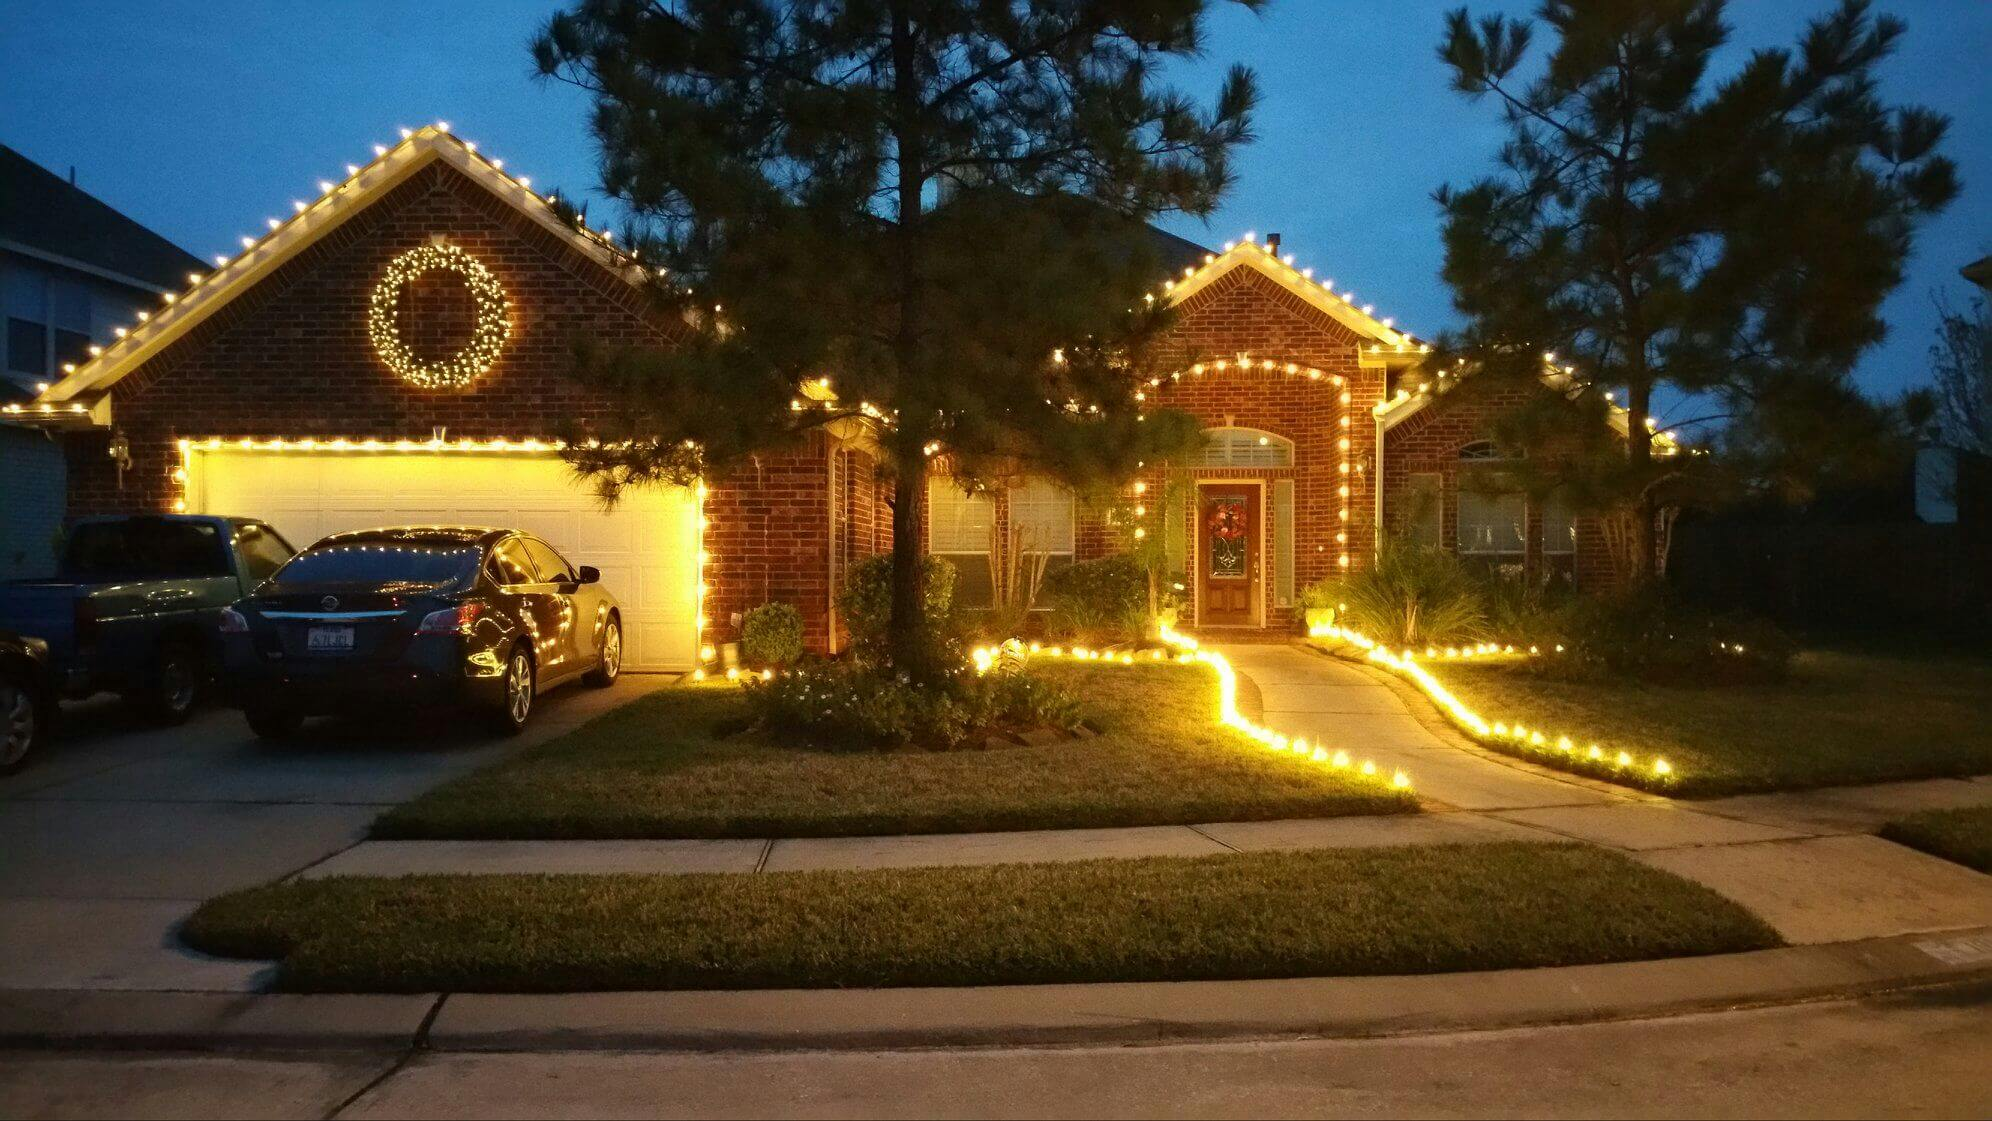 Iu0027ve used Christmas Light Creations for several years and have been very pleased. They respond quickly to calls regarding light outagesu2026 & Christmas Light Installation - Service - Removal azcodes.com